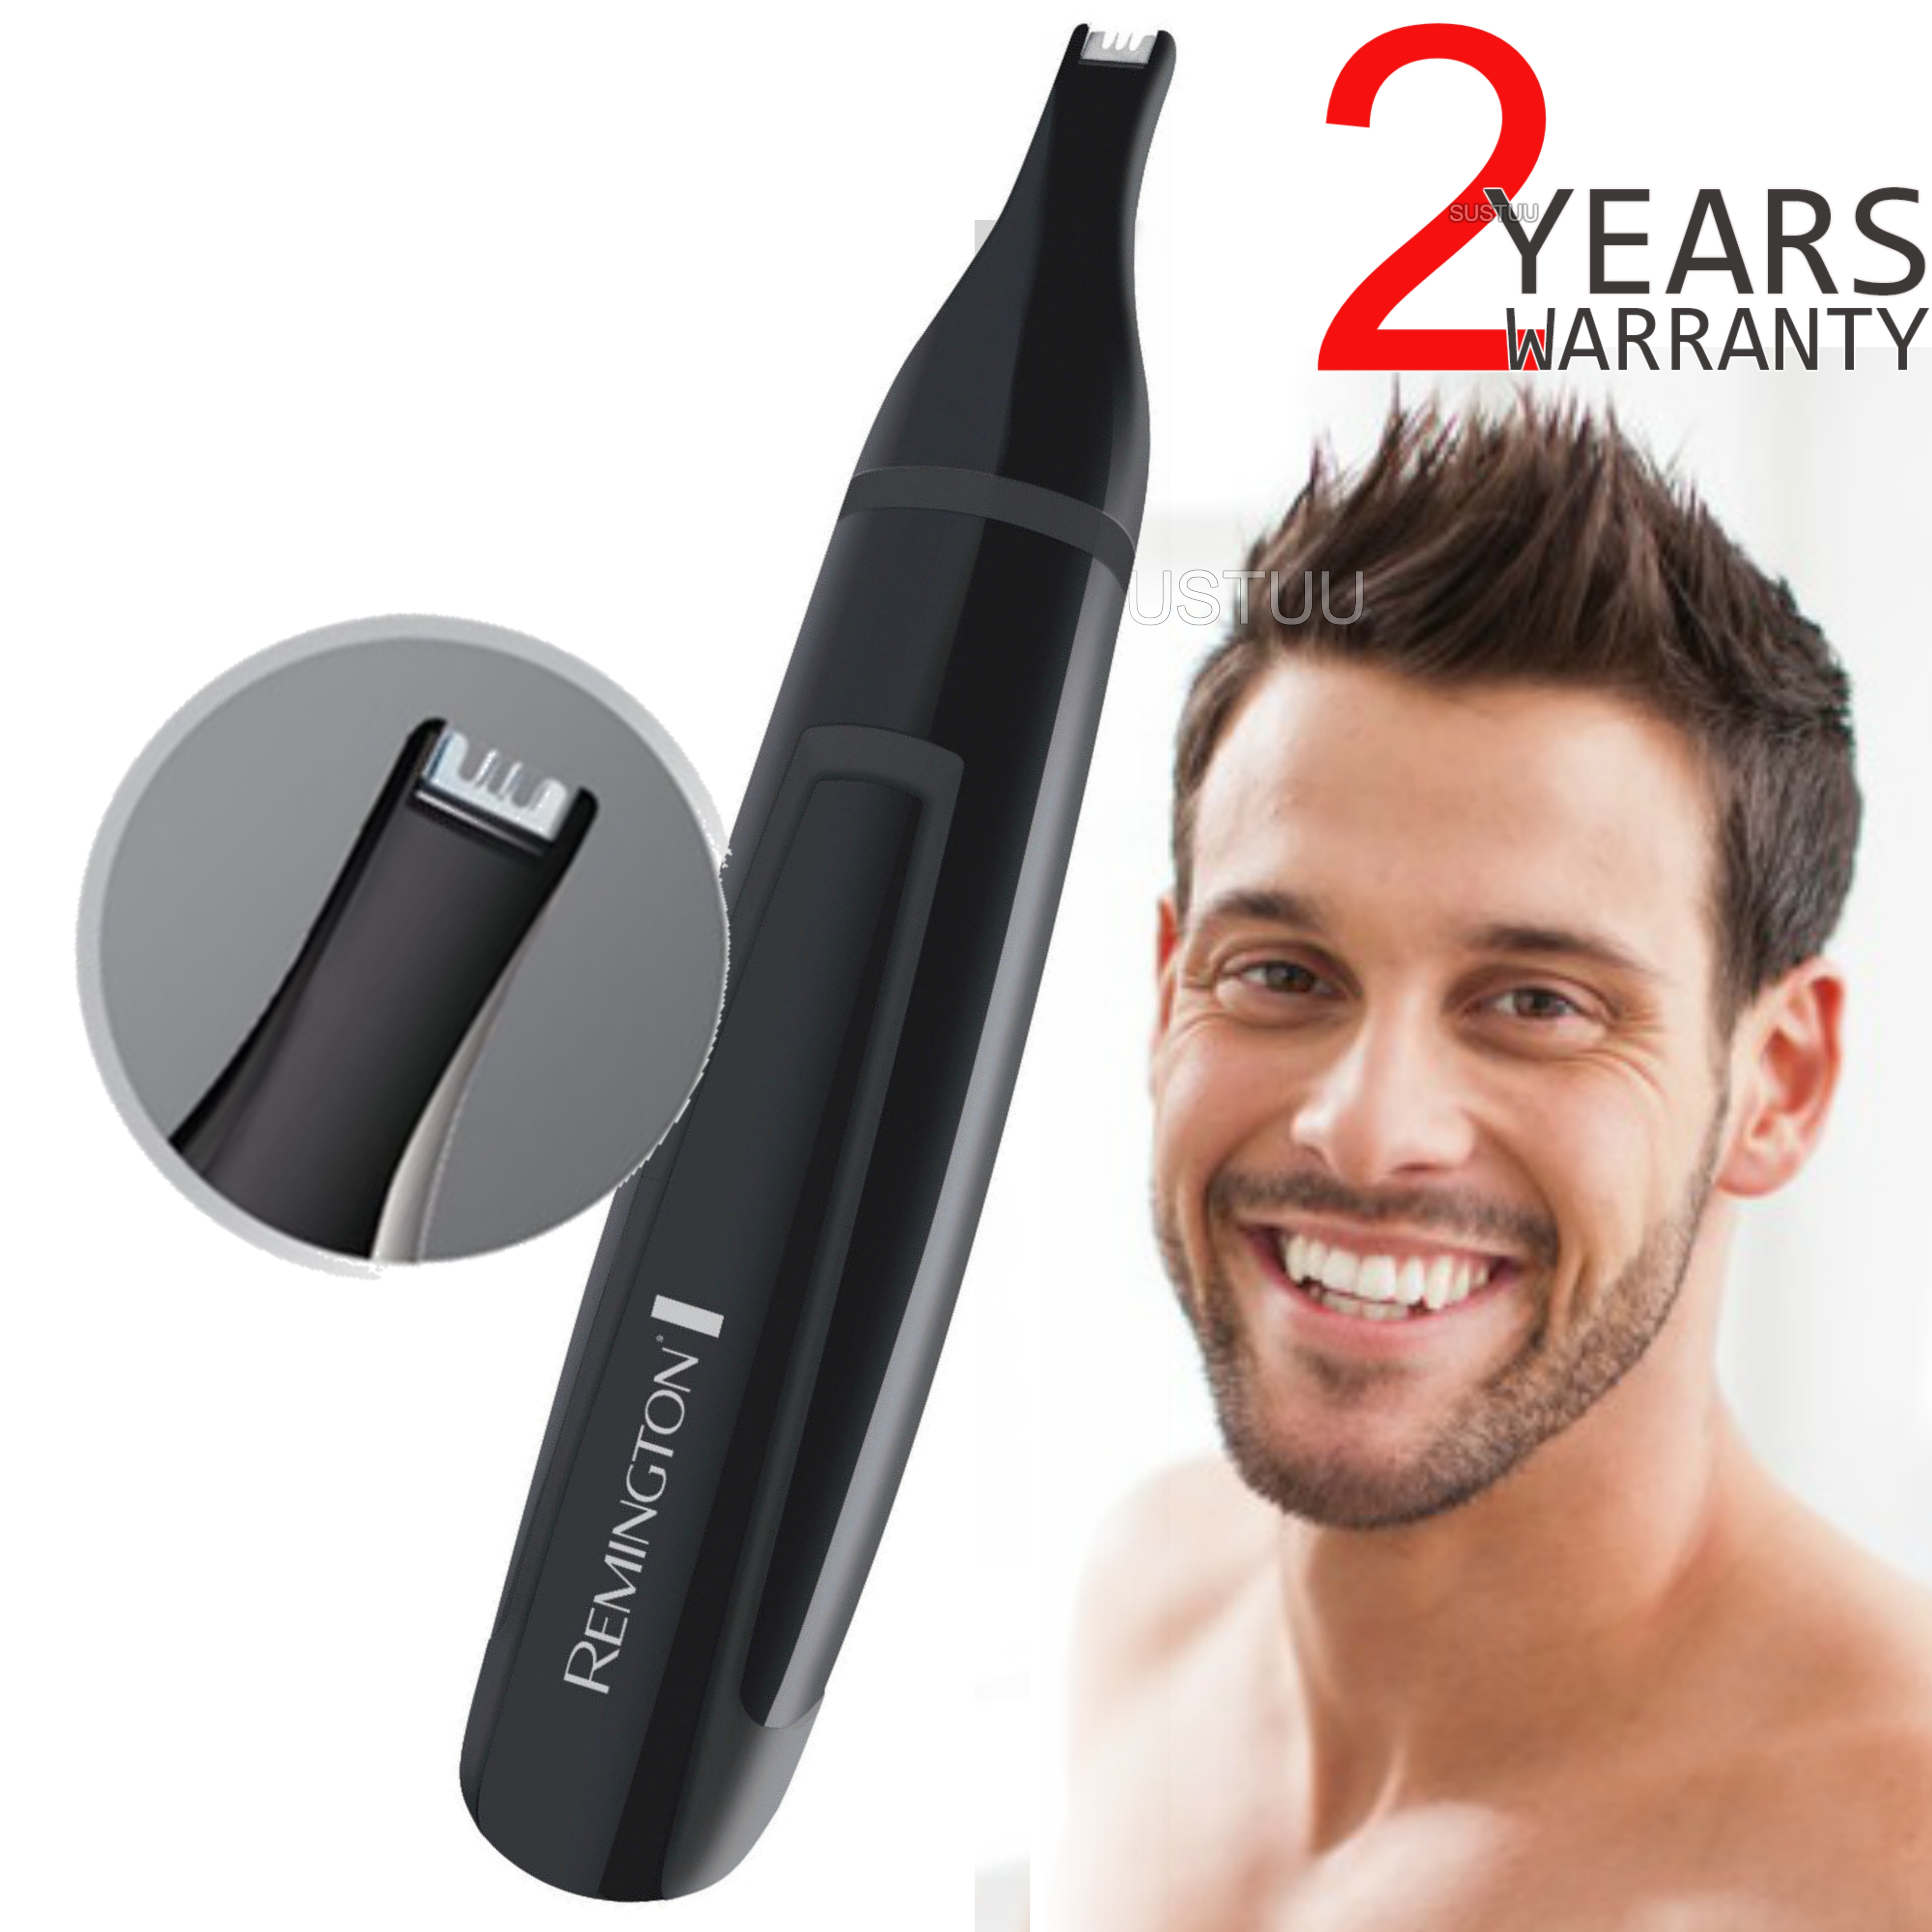 Remington NE3150 Nose-Nasal-Ear-Eyebrow-Hair Clipper Trimmer | For Men | Washable